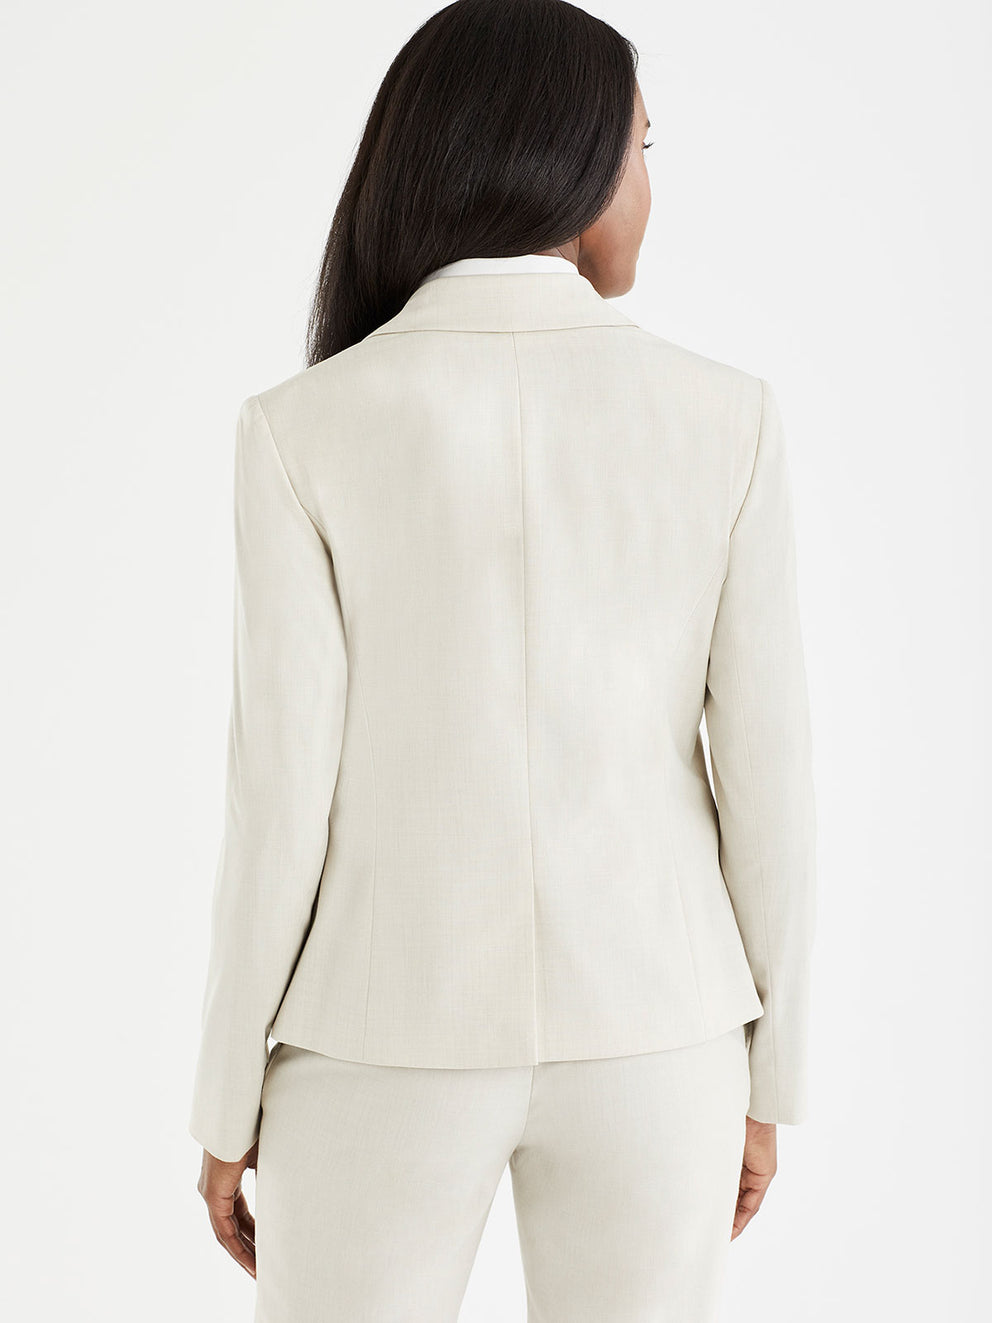 The Jones New York Washable Cropped Two-Button Jacket in color Stone - Image Position 3